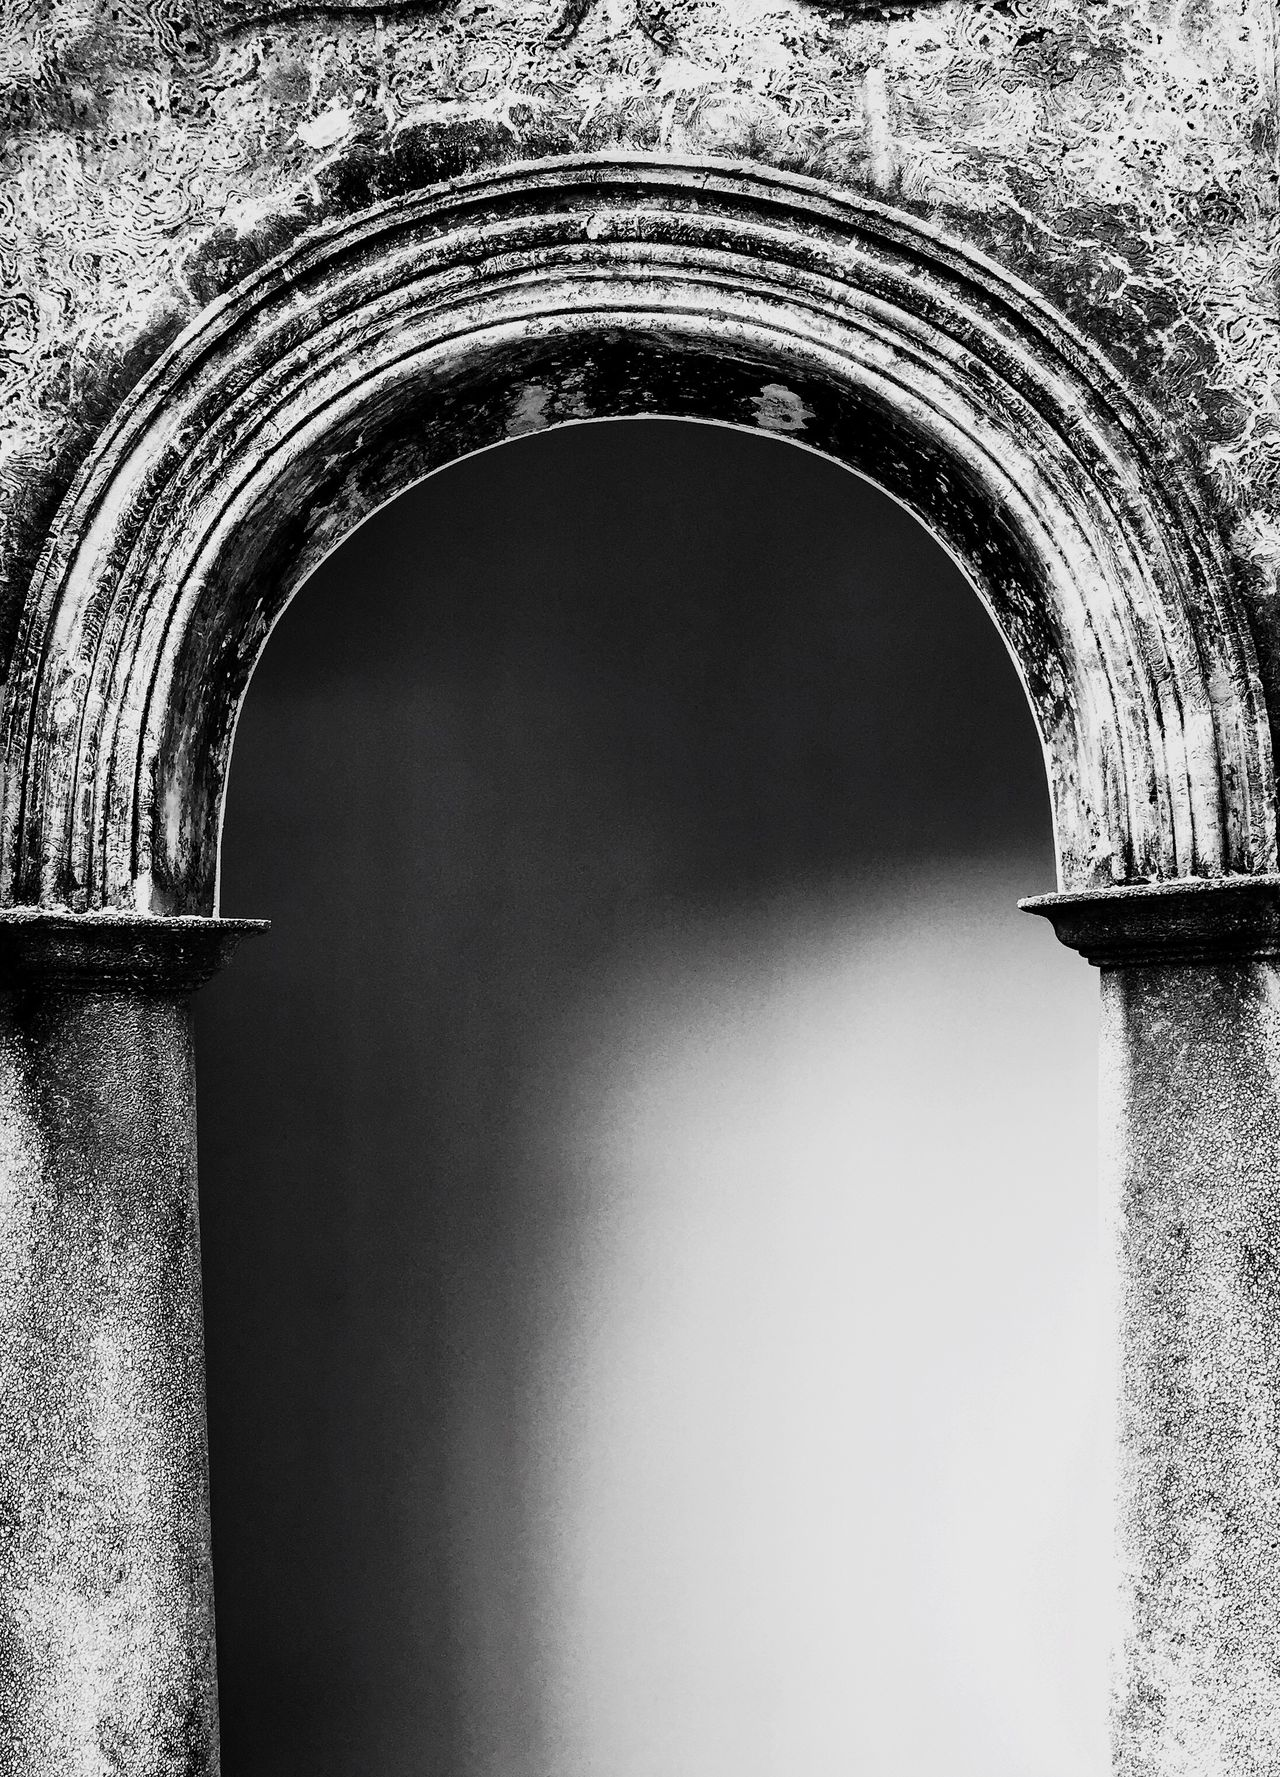 Architecture Arch Built Structure Building Exterior No People Day Arched Outdoors Blackandwhite Black And White Zhuhai China